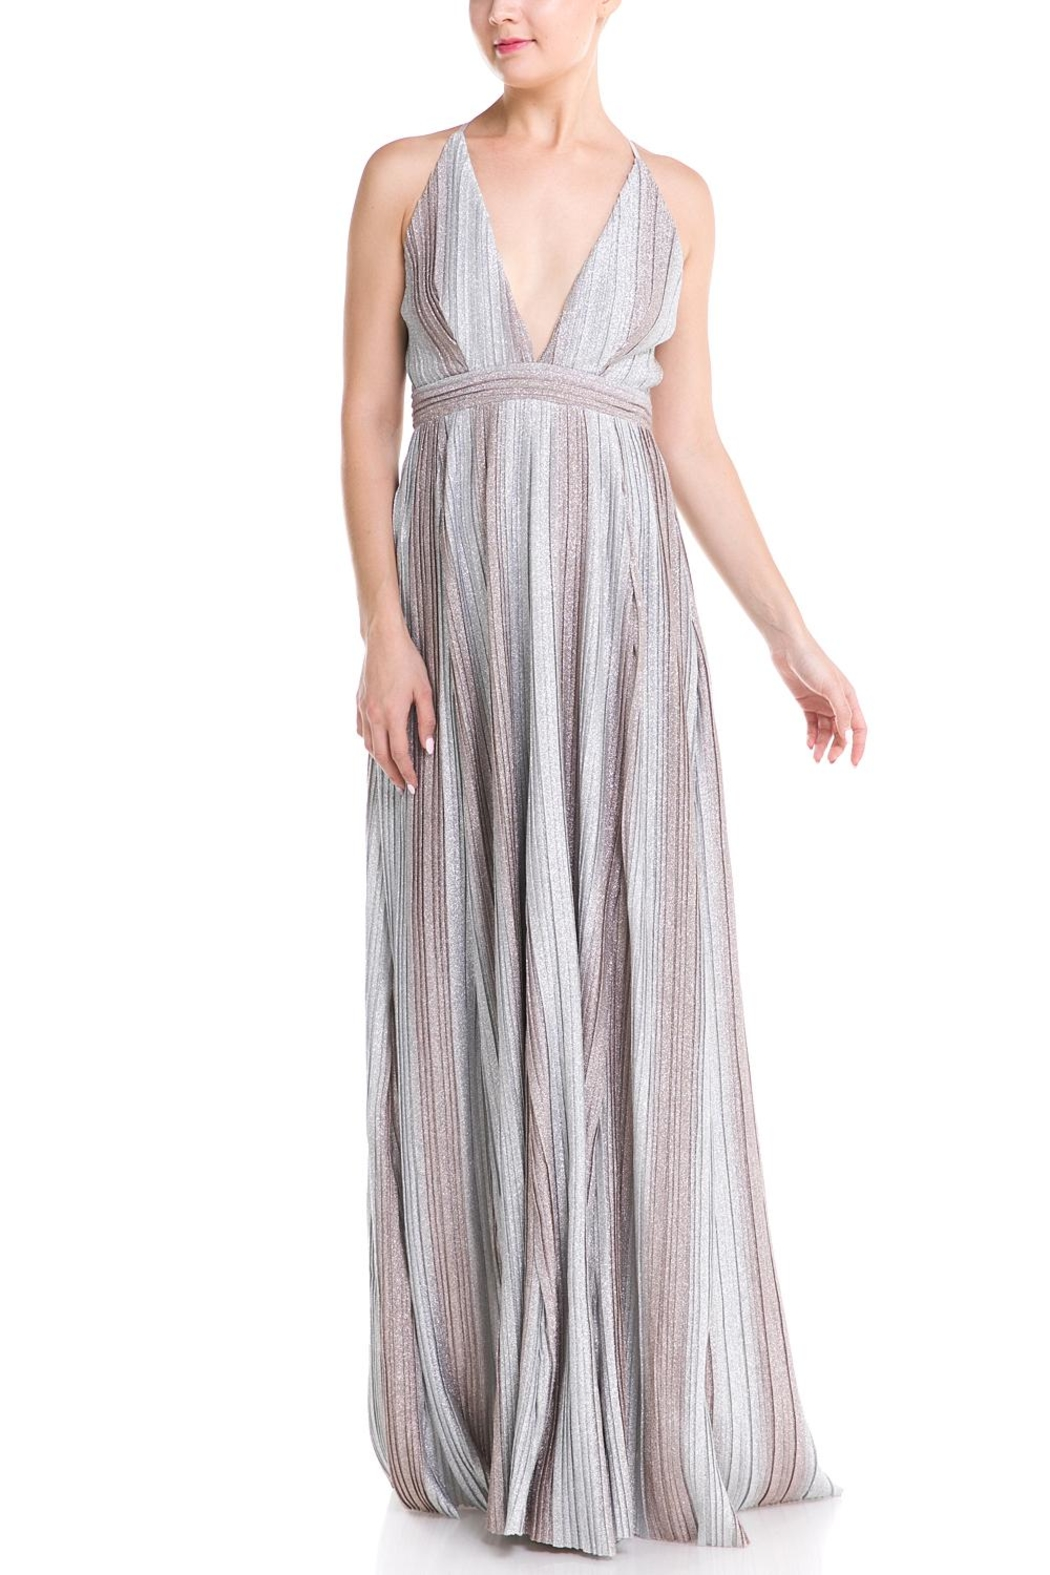 a7c97ce28b luxxel Plunging Maxi Dress from New York by Dor L Dor — Shoptiques